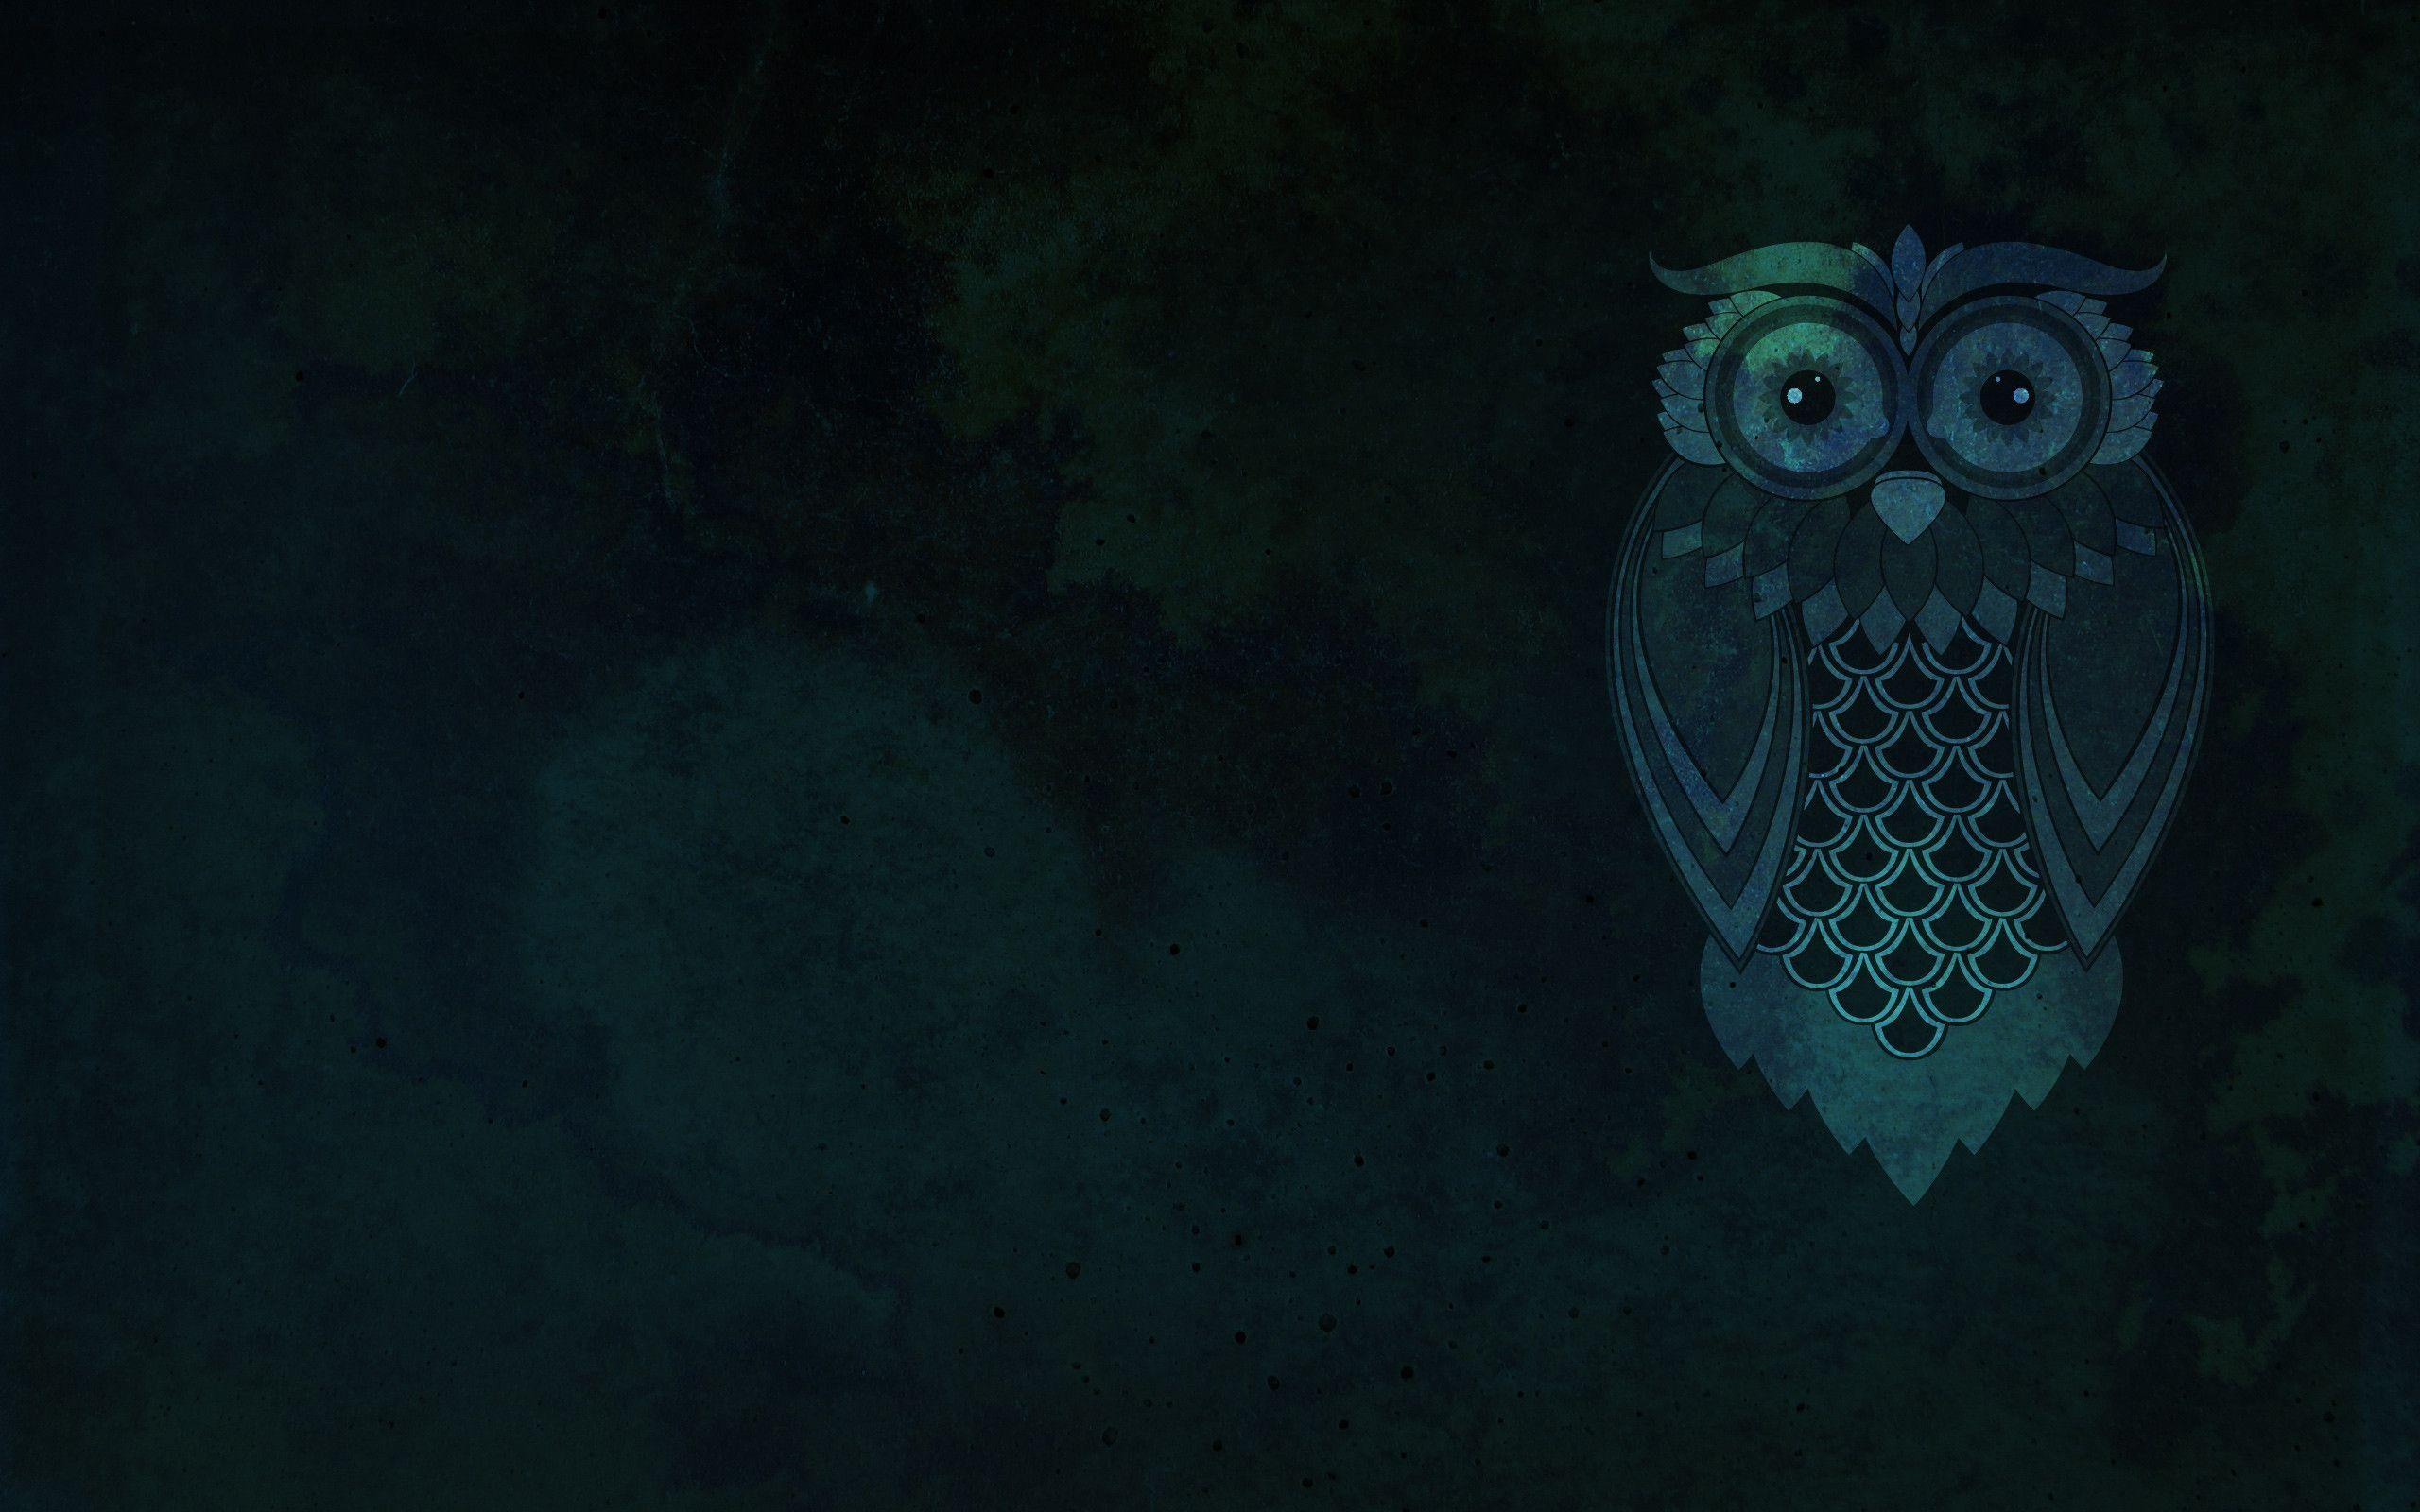 Owl Wallpapers For Computer - Wallpaper Cave  Owl Wallpapers ...